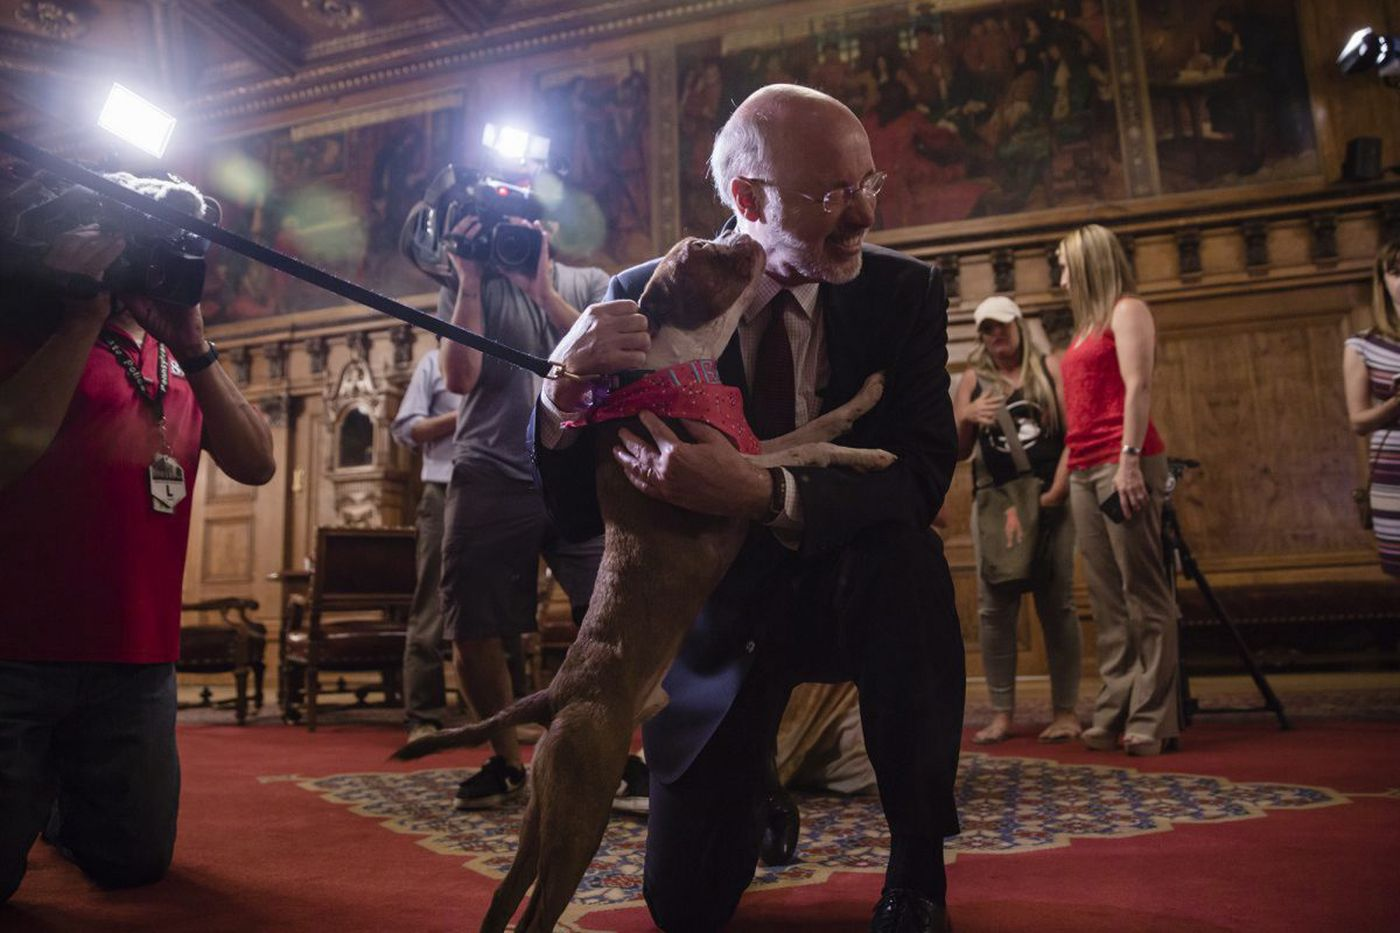 Five things to know about Pa.'s new animal cruelty law